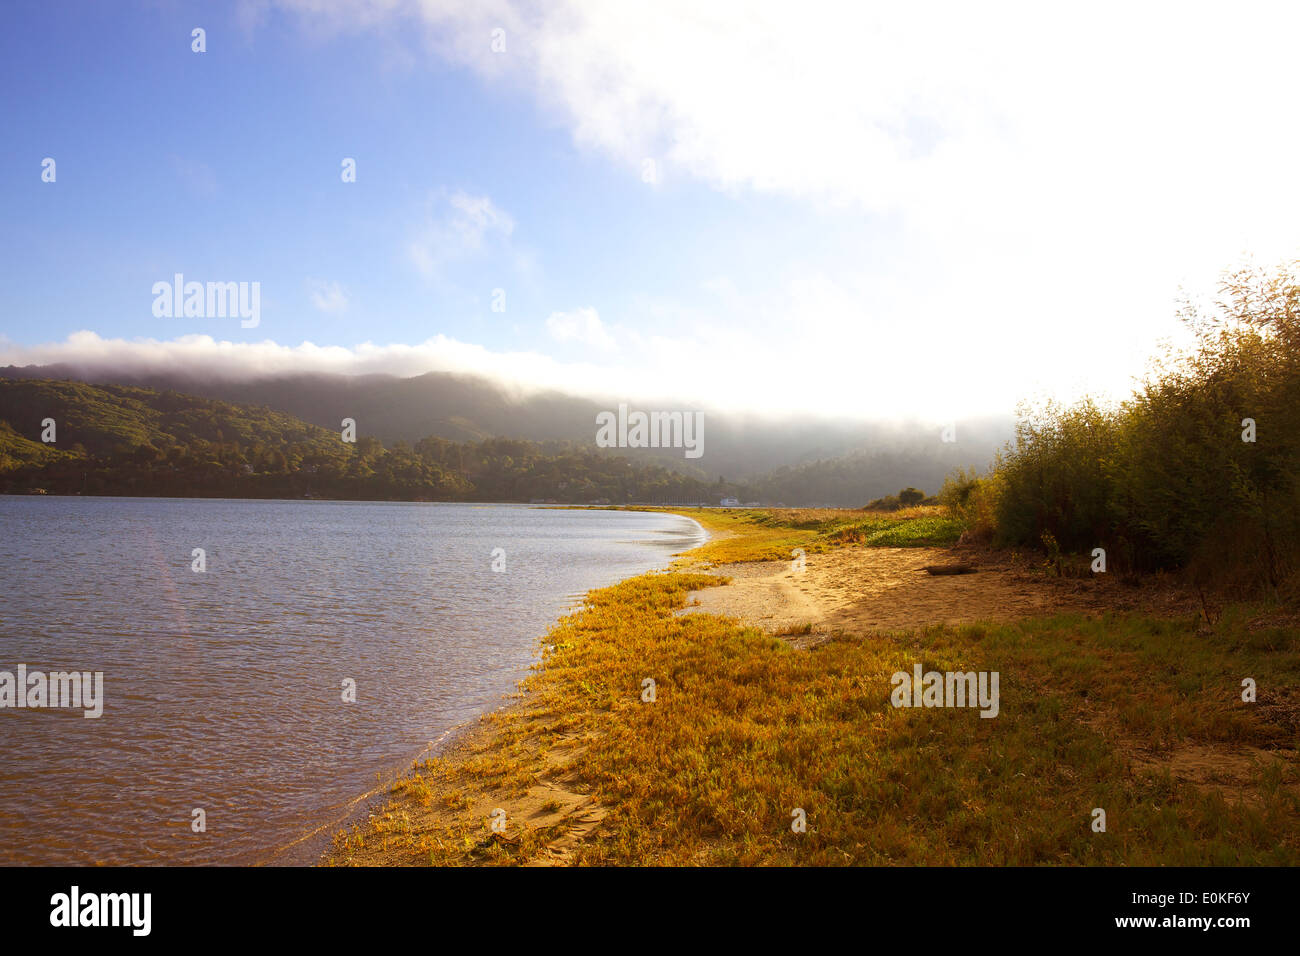 A hiking trail along the water on the shoreline of Tomales Bay. - Stock Image